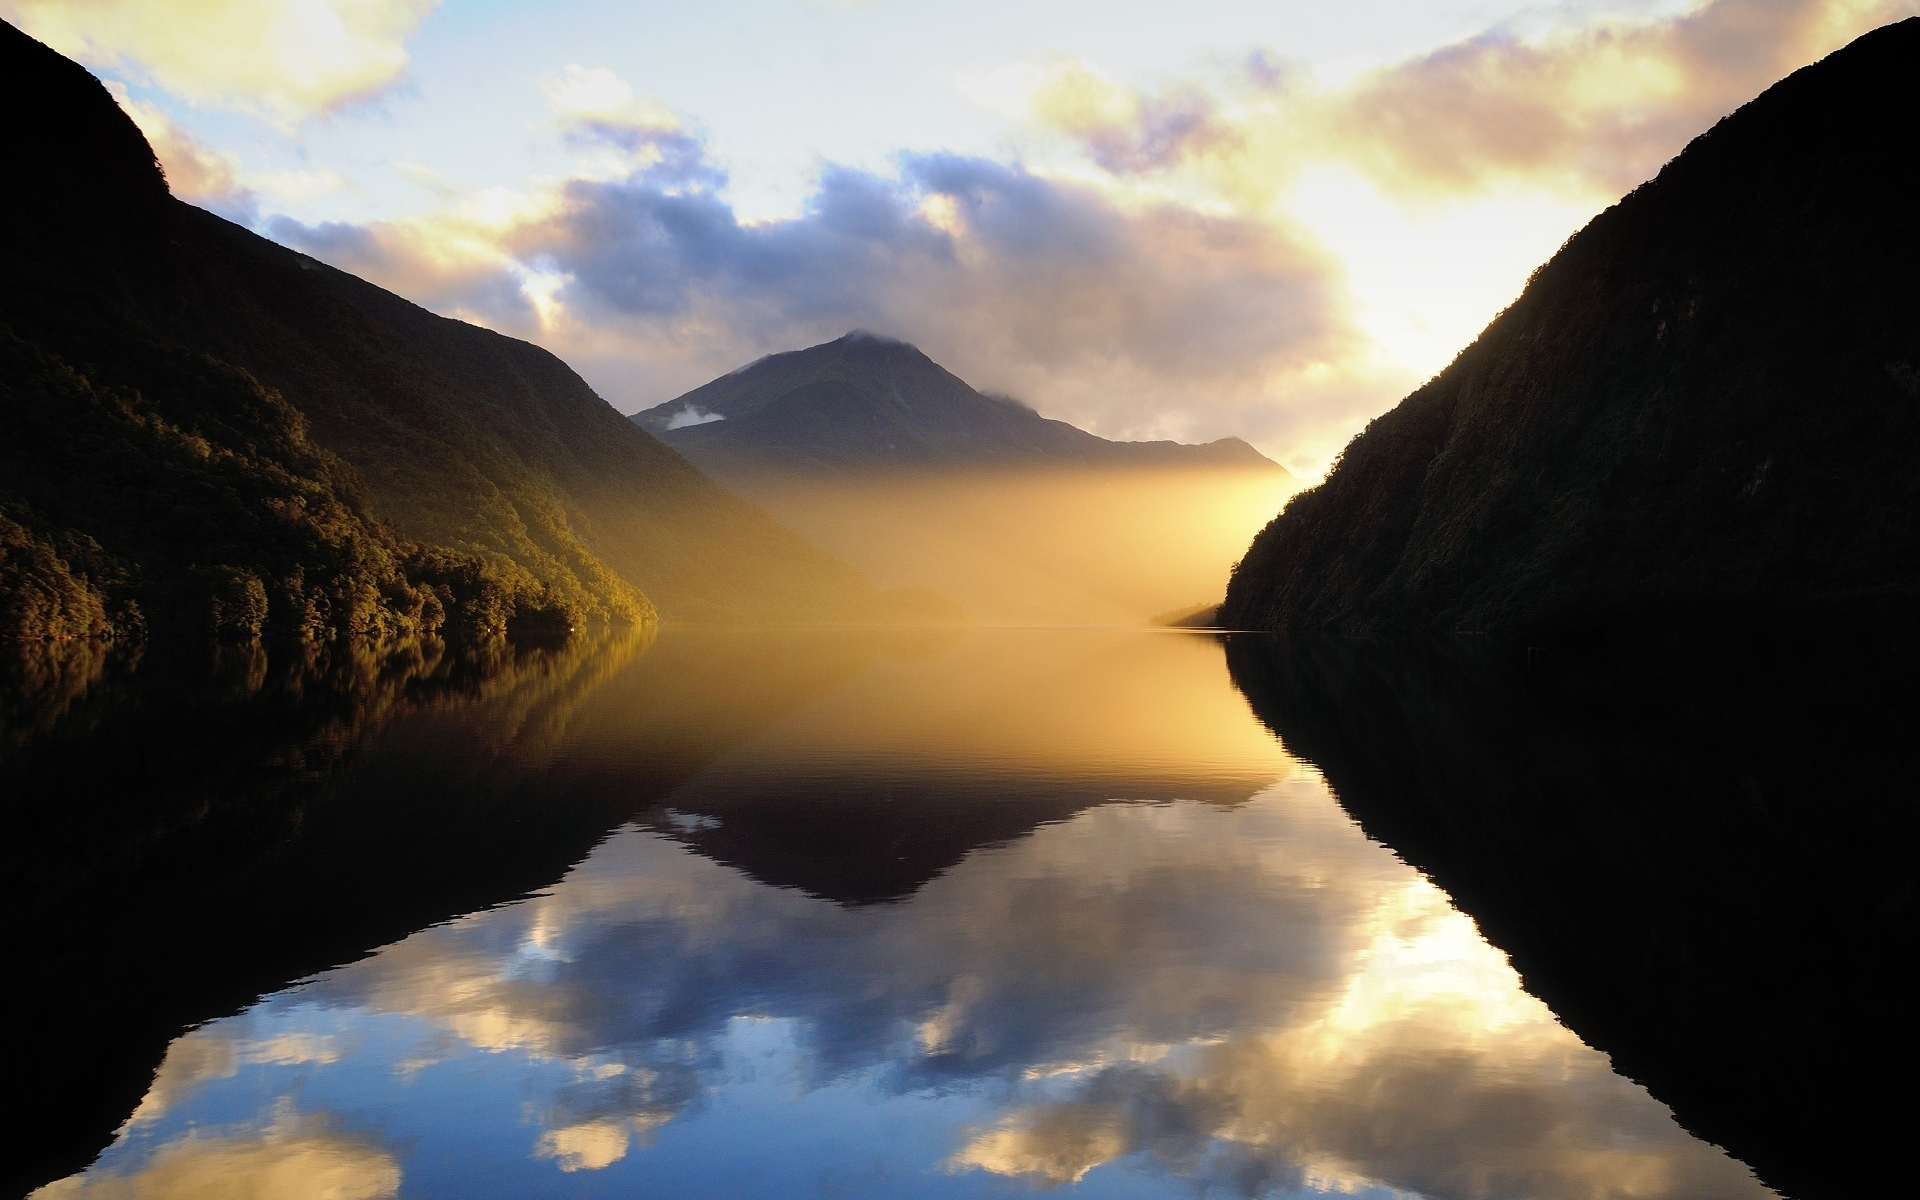 49963 download wallpaper Landscape, Nature, Mountains, Lakes screensavers and pictures for free